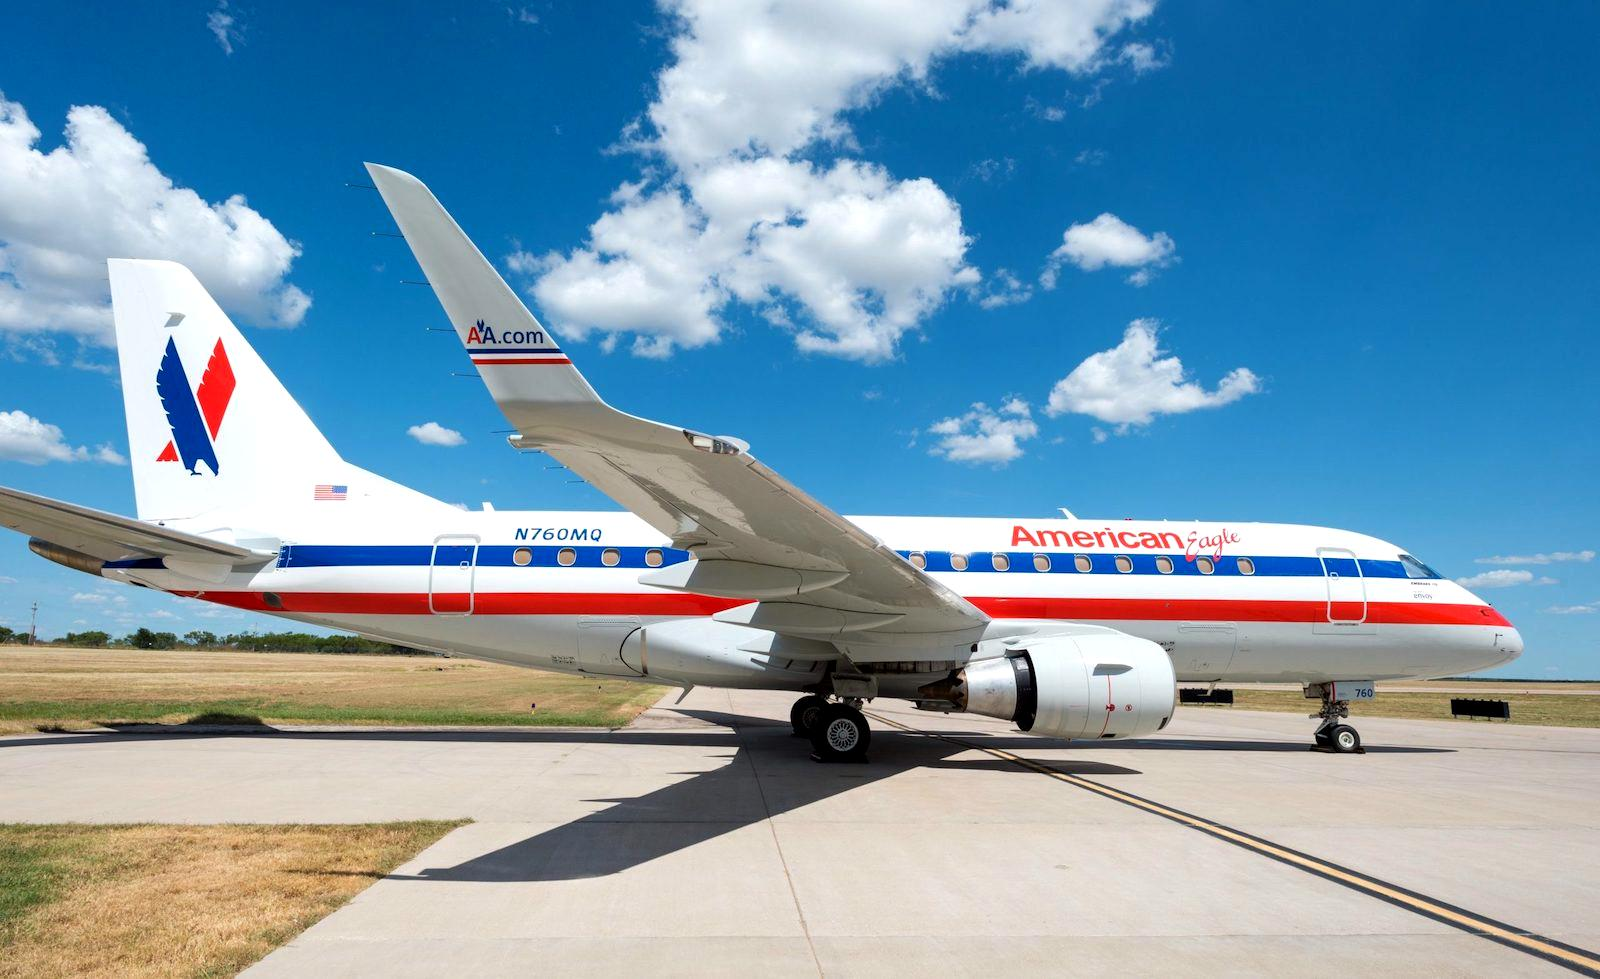 Swoon: American Eagle Heritage Livery Retro Jet